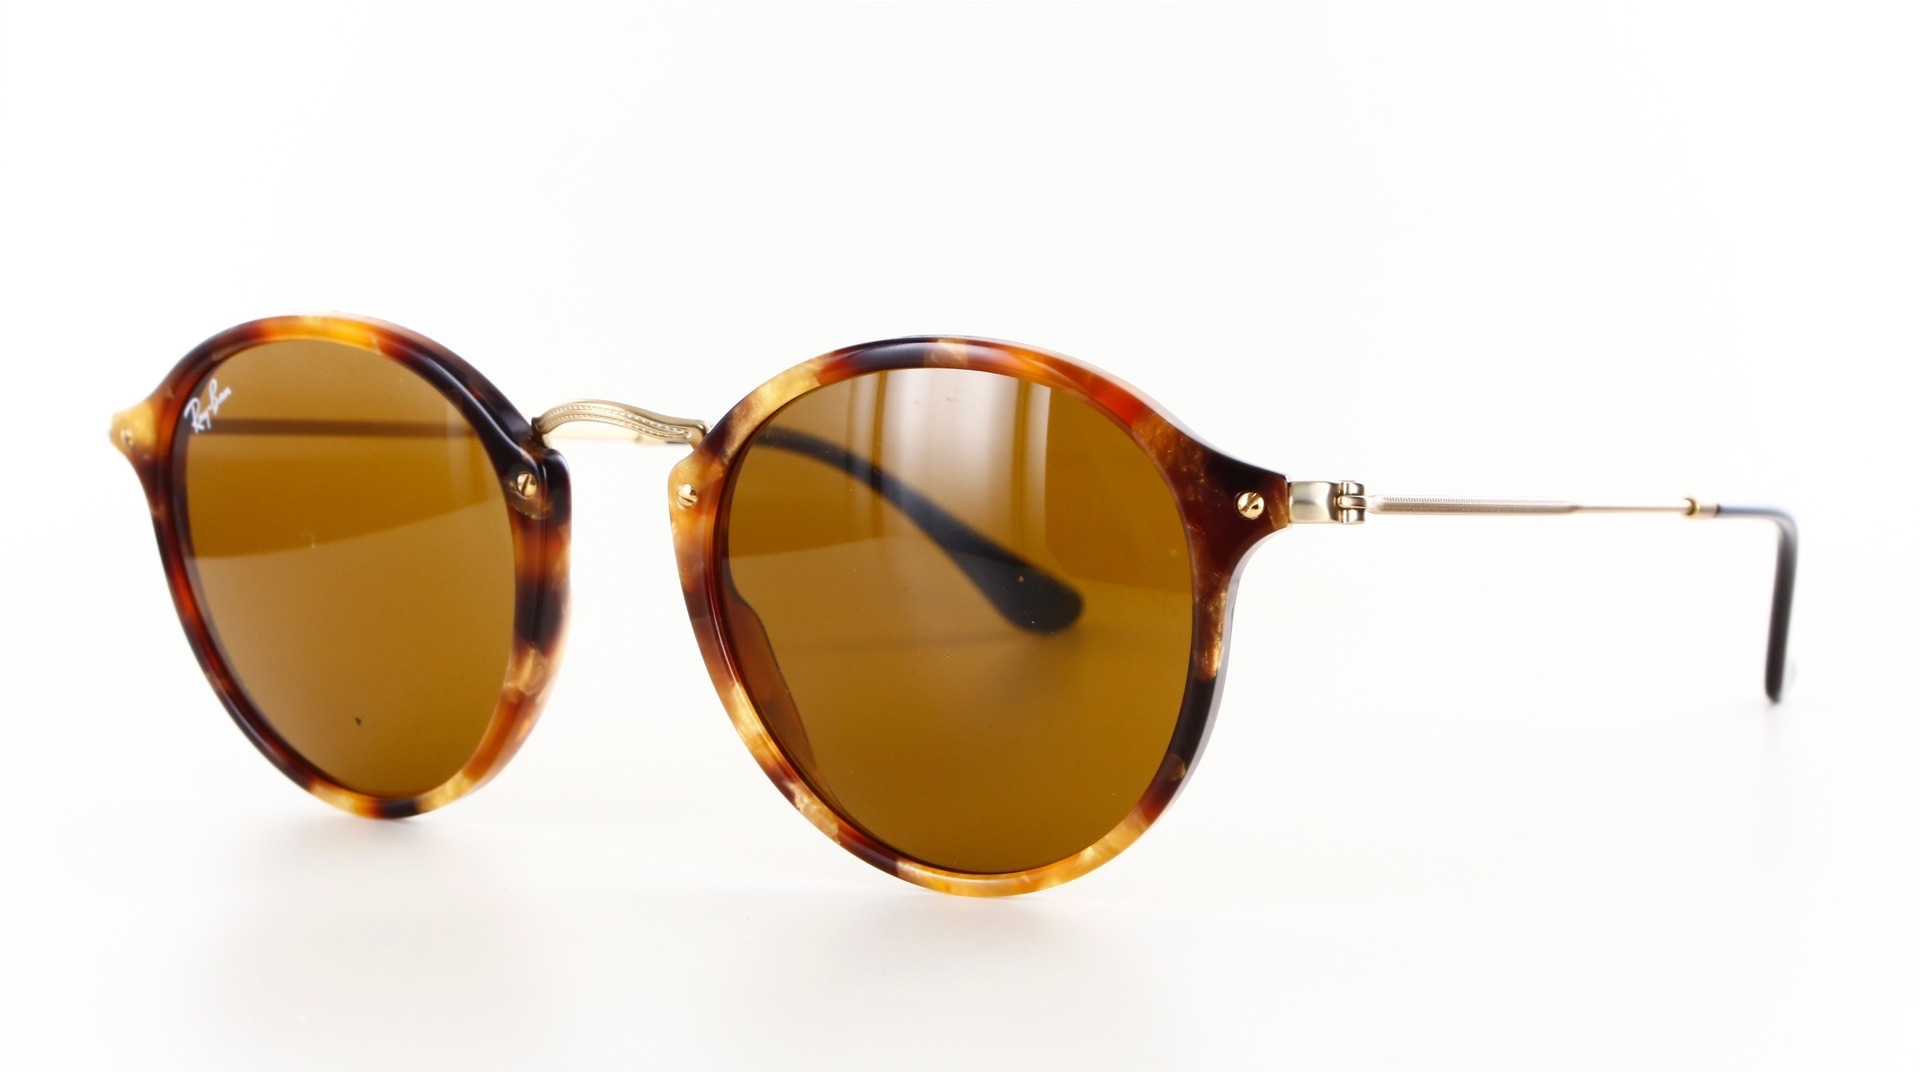 Ray-Ban - ref: 74770